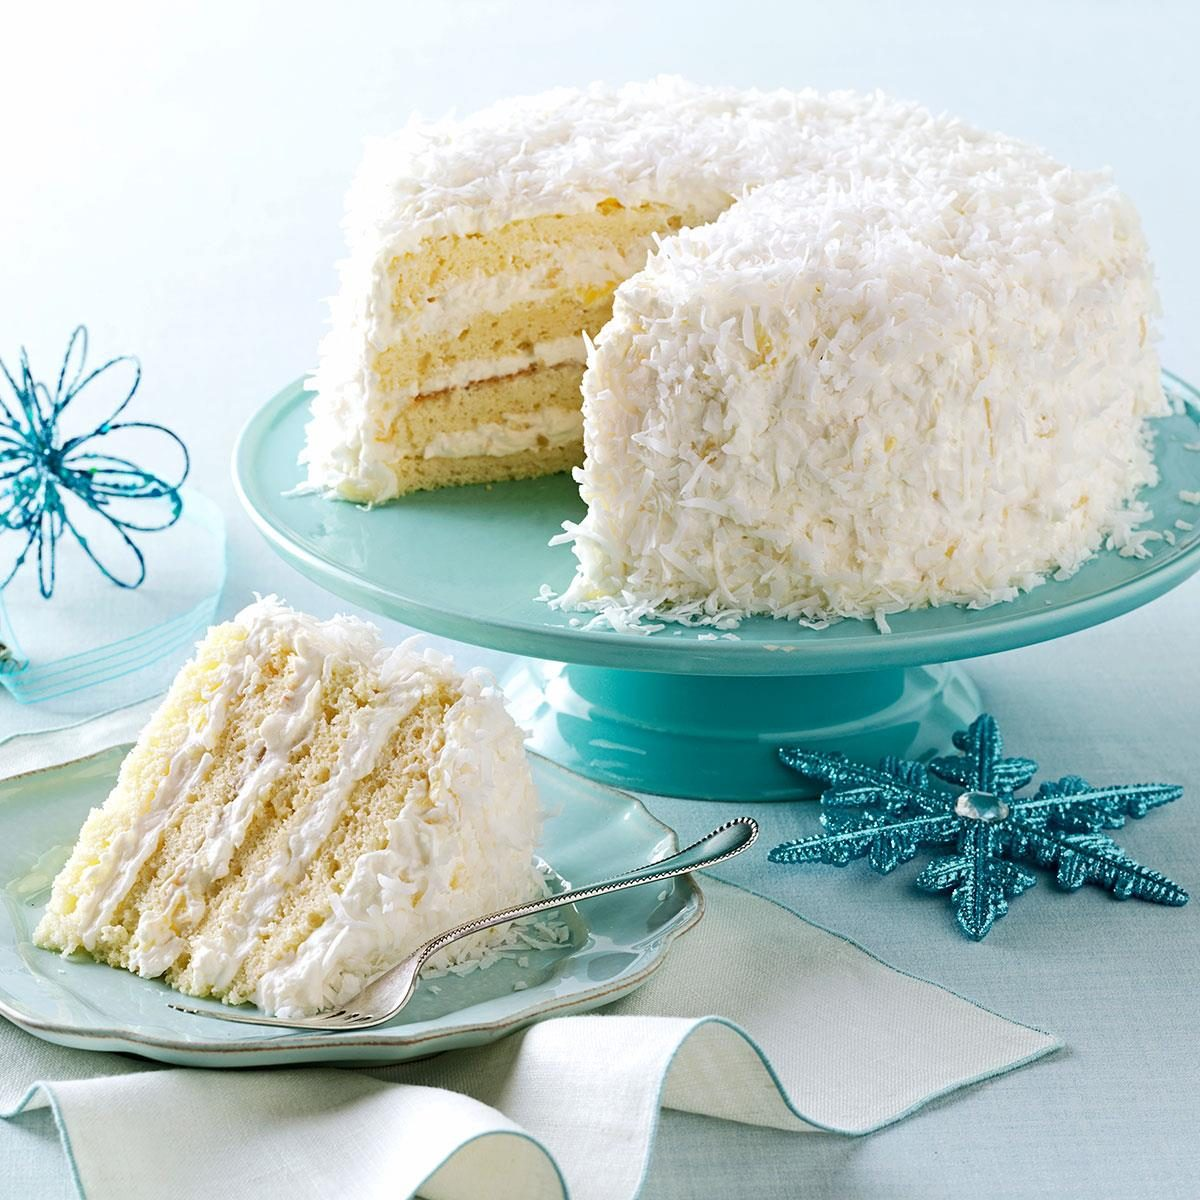 Coconut Cake Recipes With Pictures : Pineapple Coconut Cake Recipe Taste of Home